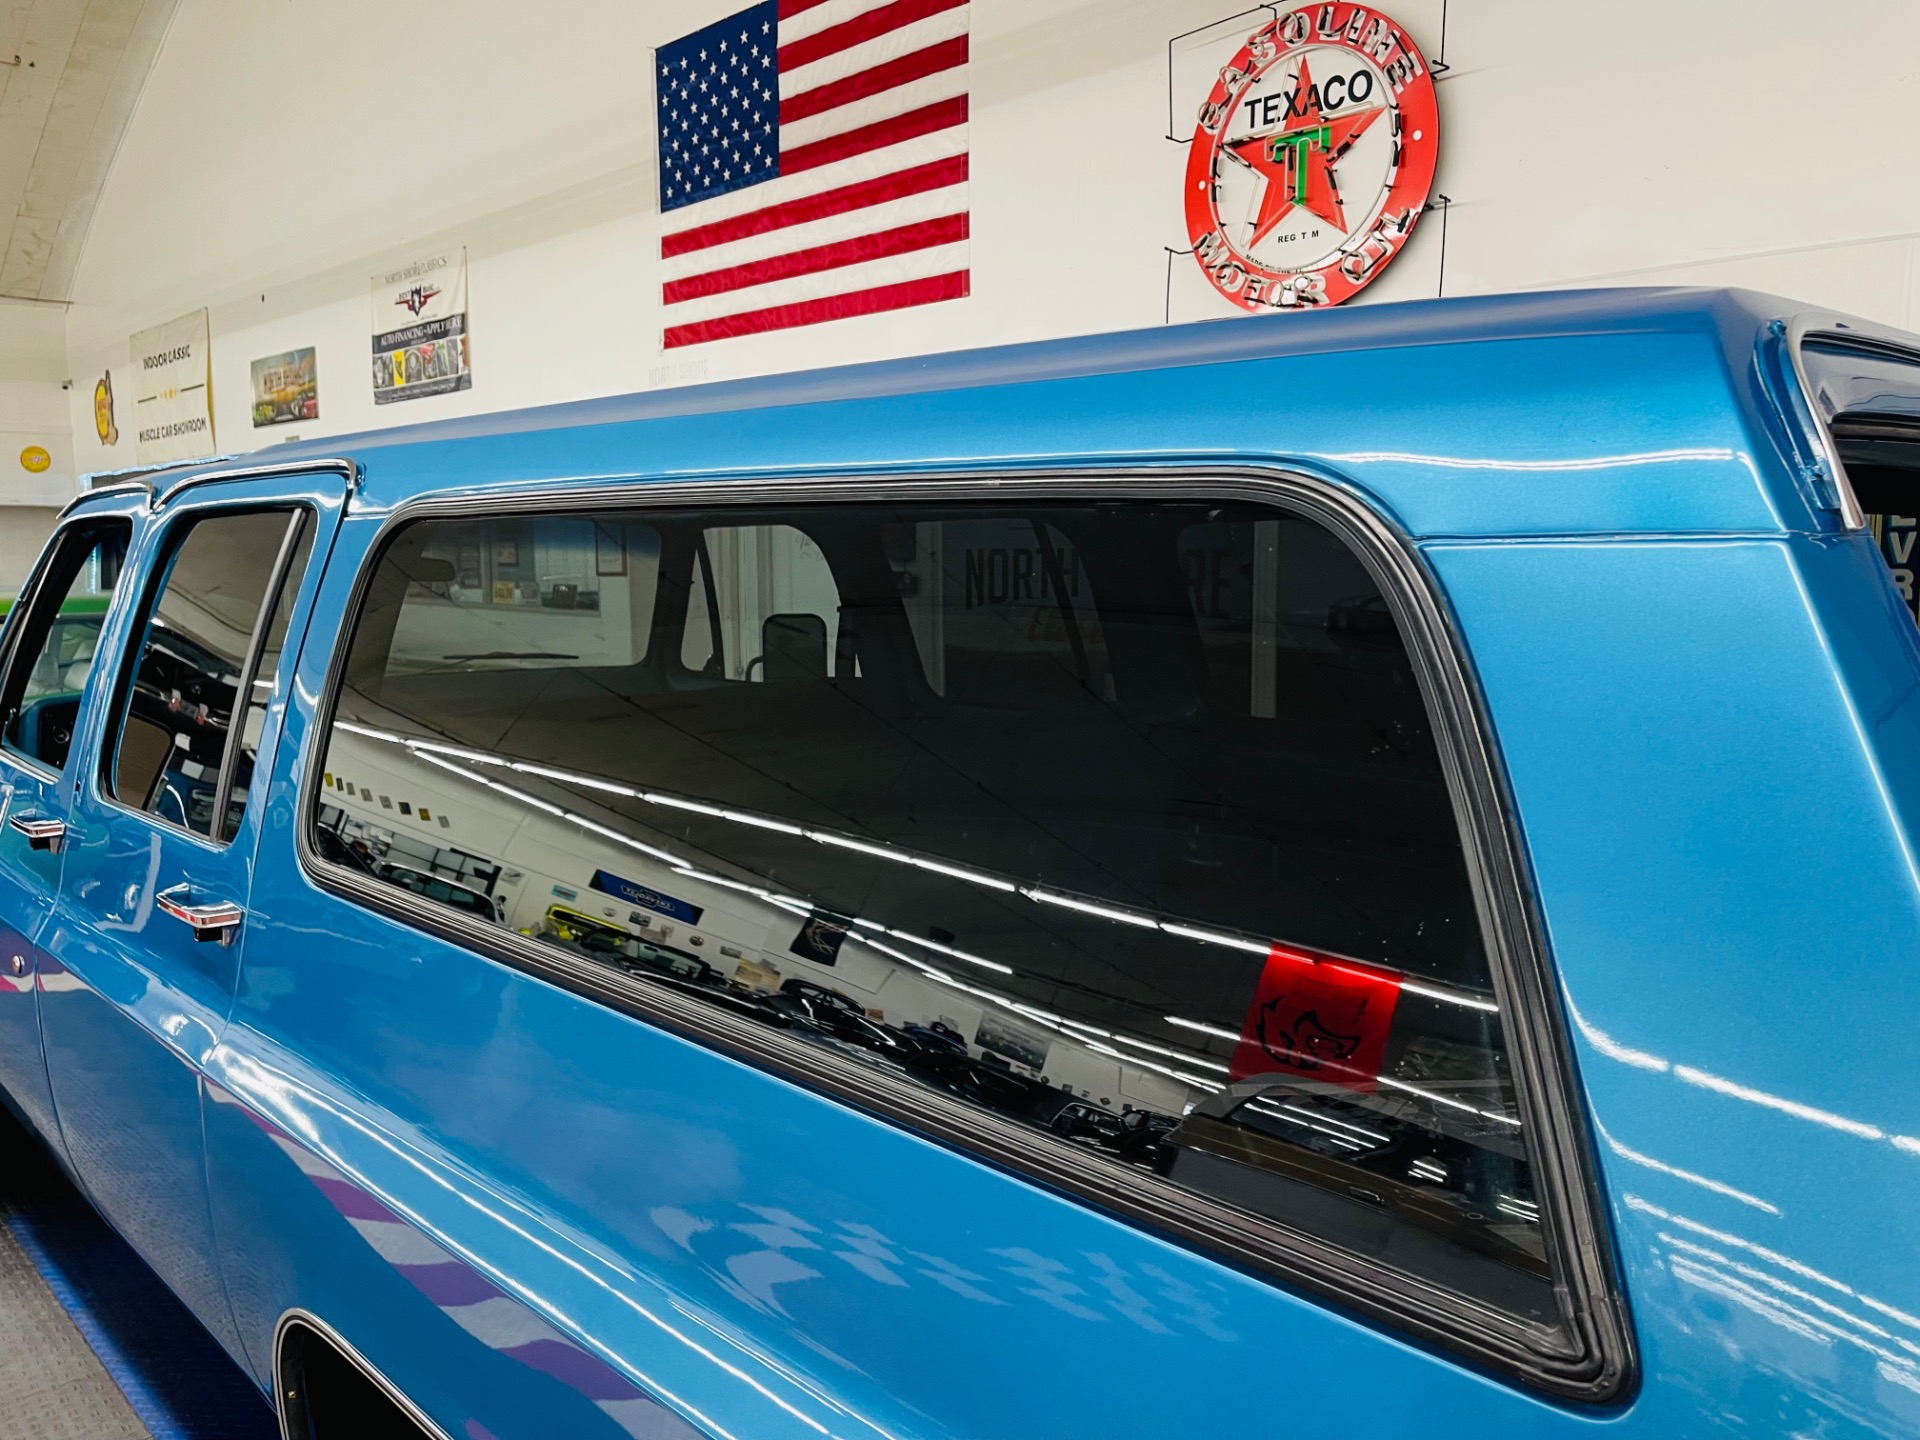 Used 1978 Chevrolet Suburban - VERY LOW MILES - LIKE NEW CONDITION - SEE VIDEO | Mundelein, IL